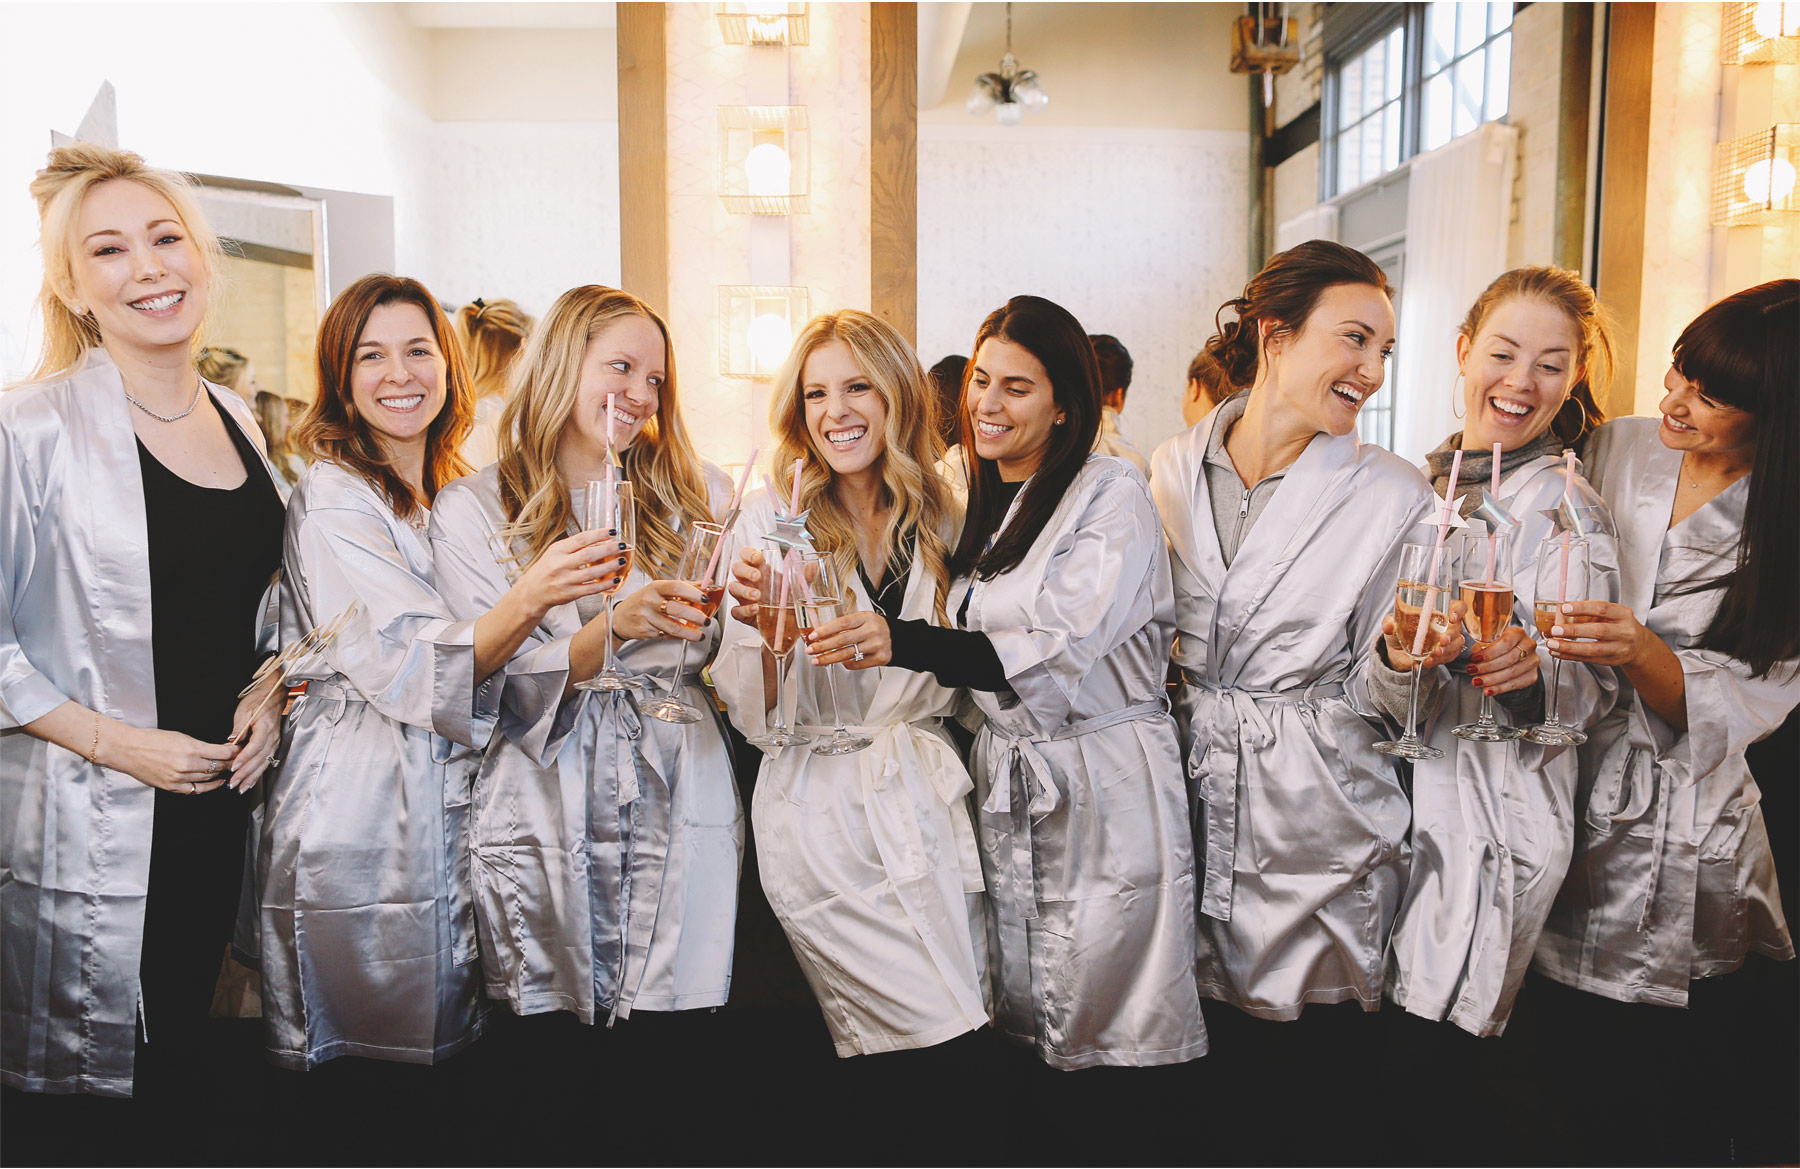 02-Minneapolis-Minnesota-Wedding-Photographer-by-Vick-Photography-Machine-Shop-Bridesmaids-Robes-Alyssa-and-Garron.jpg